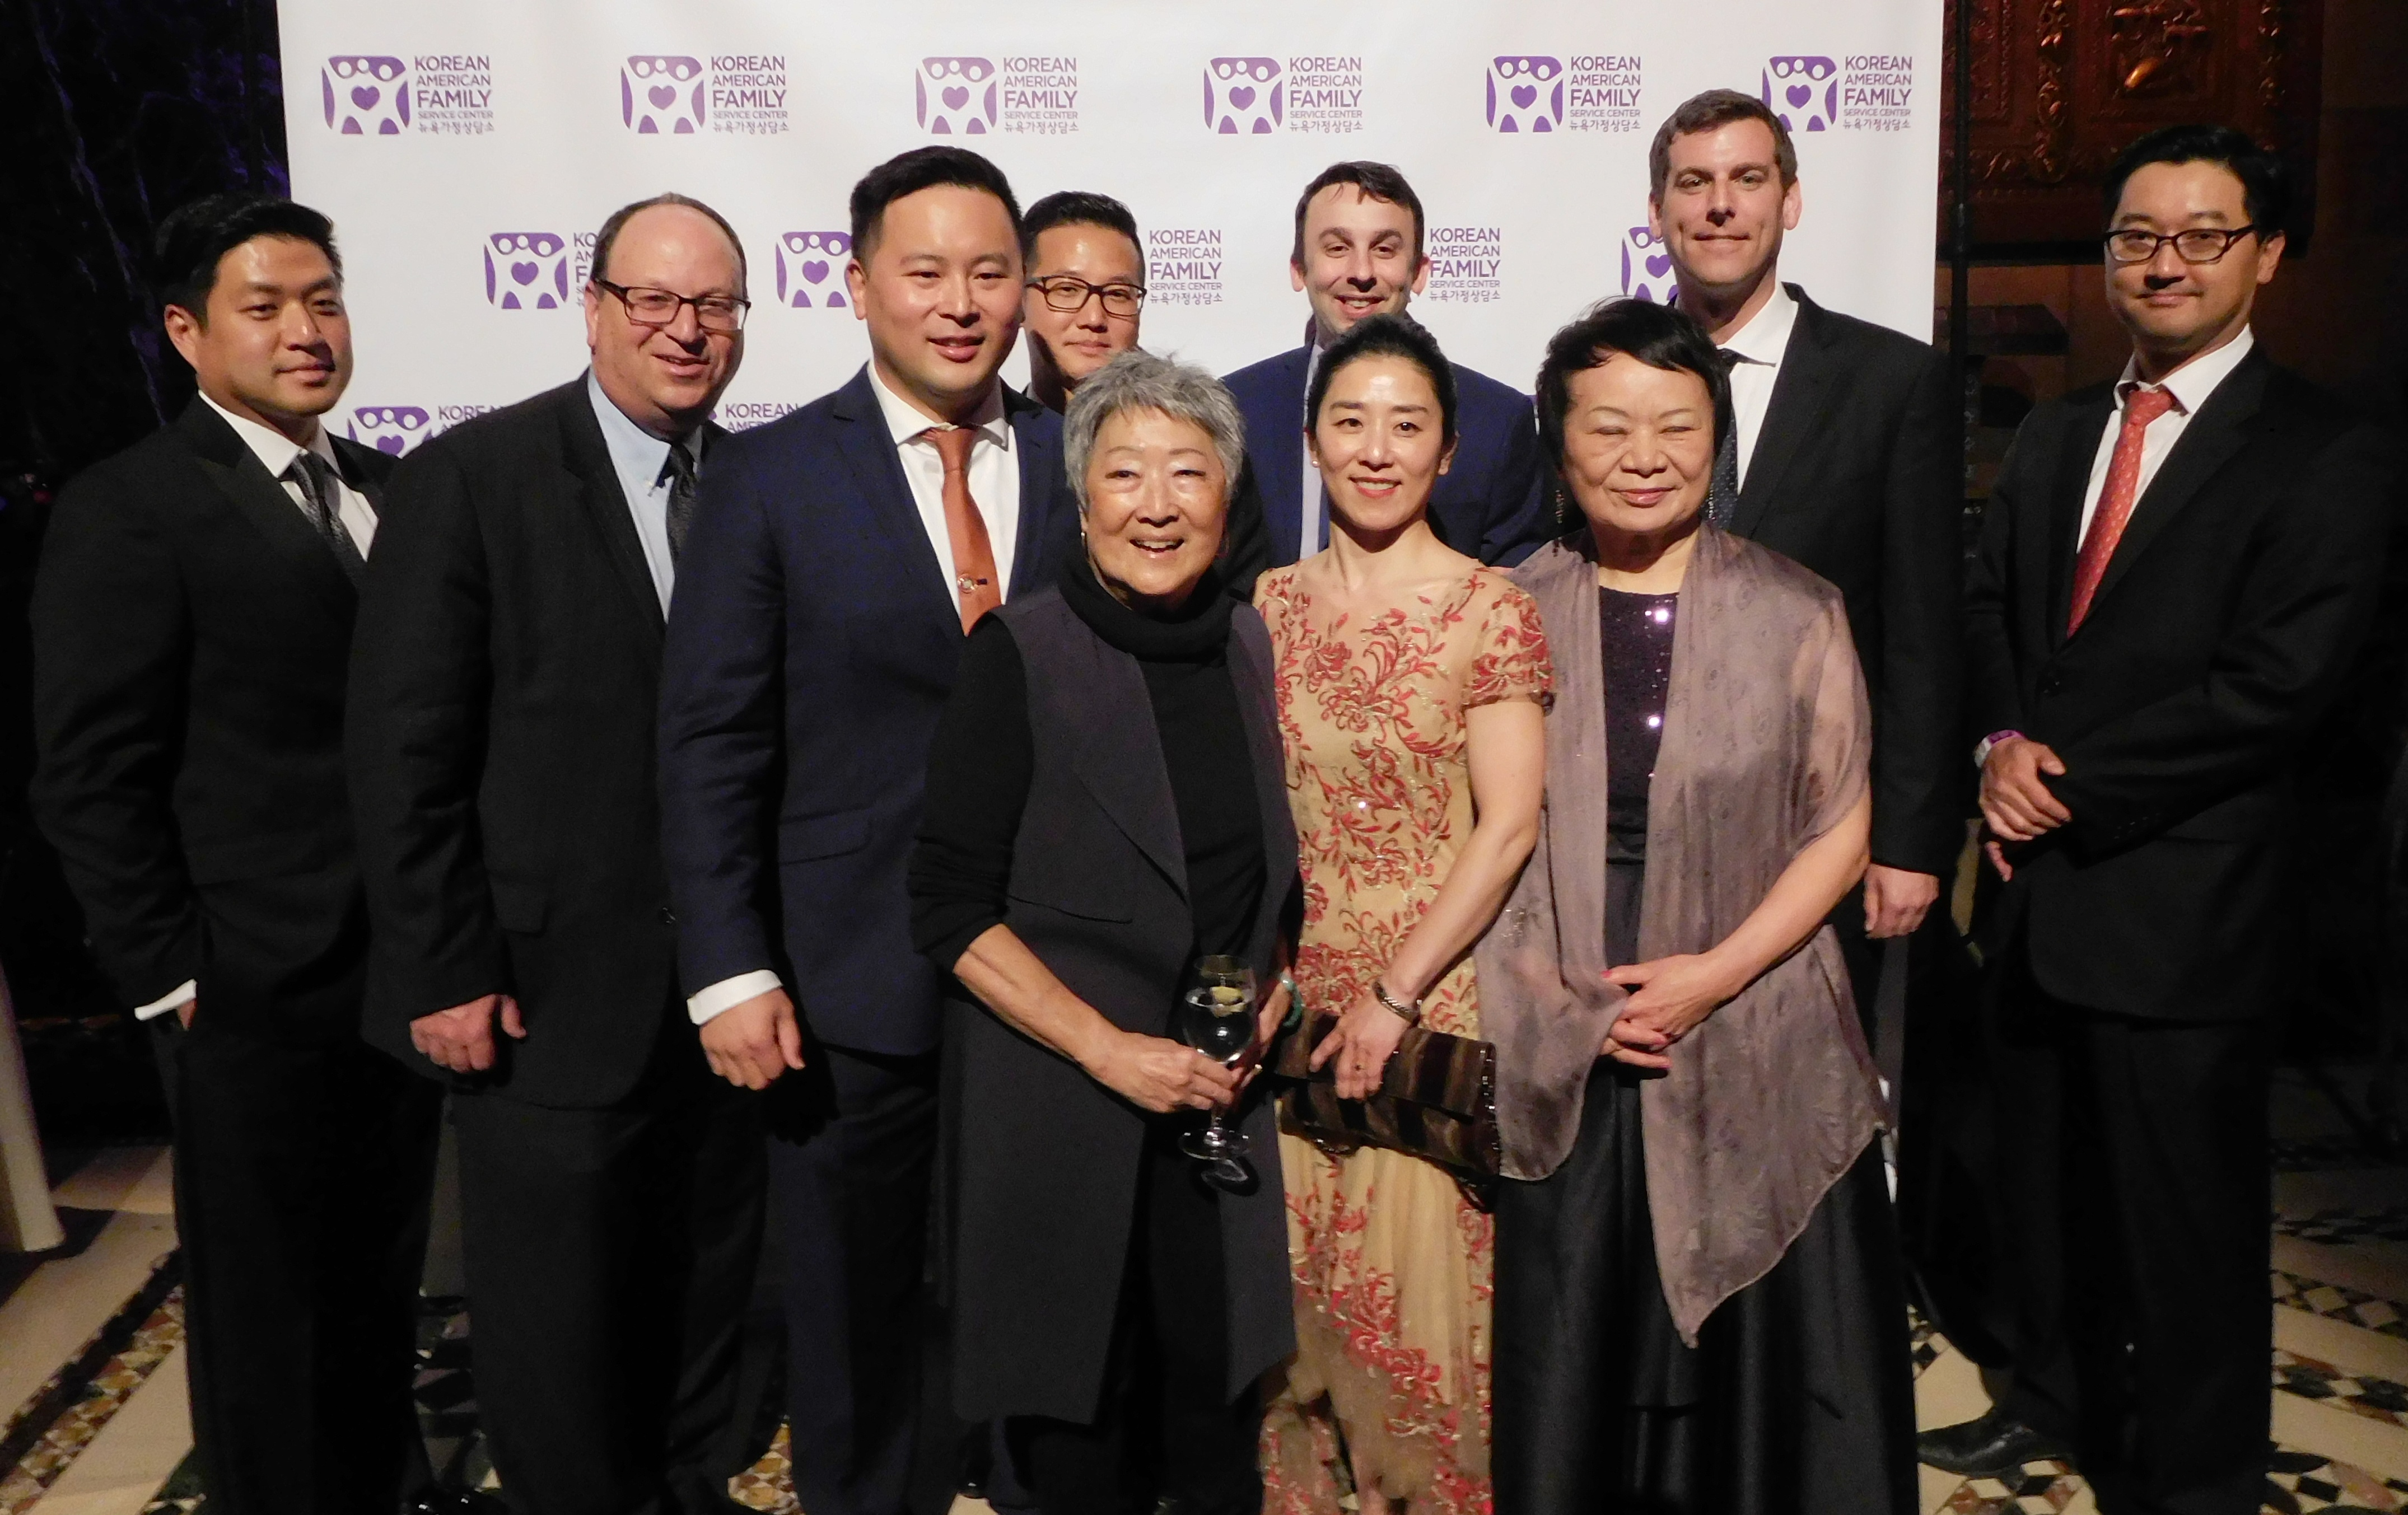 On April 27, 2018, Assemblyman Braunstein attended the Korean American Family Service Center's 29th Annual Benefit Gala.